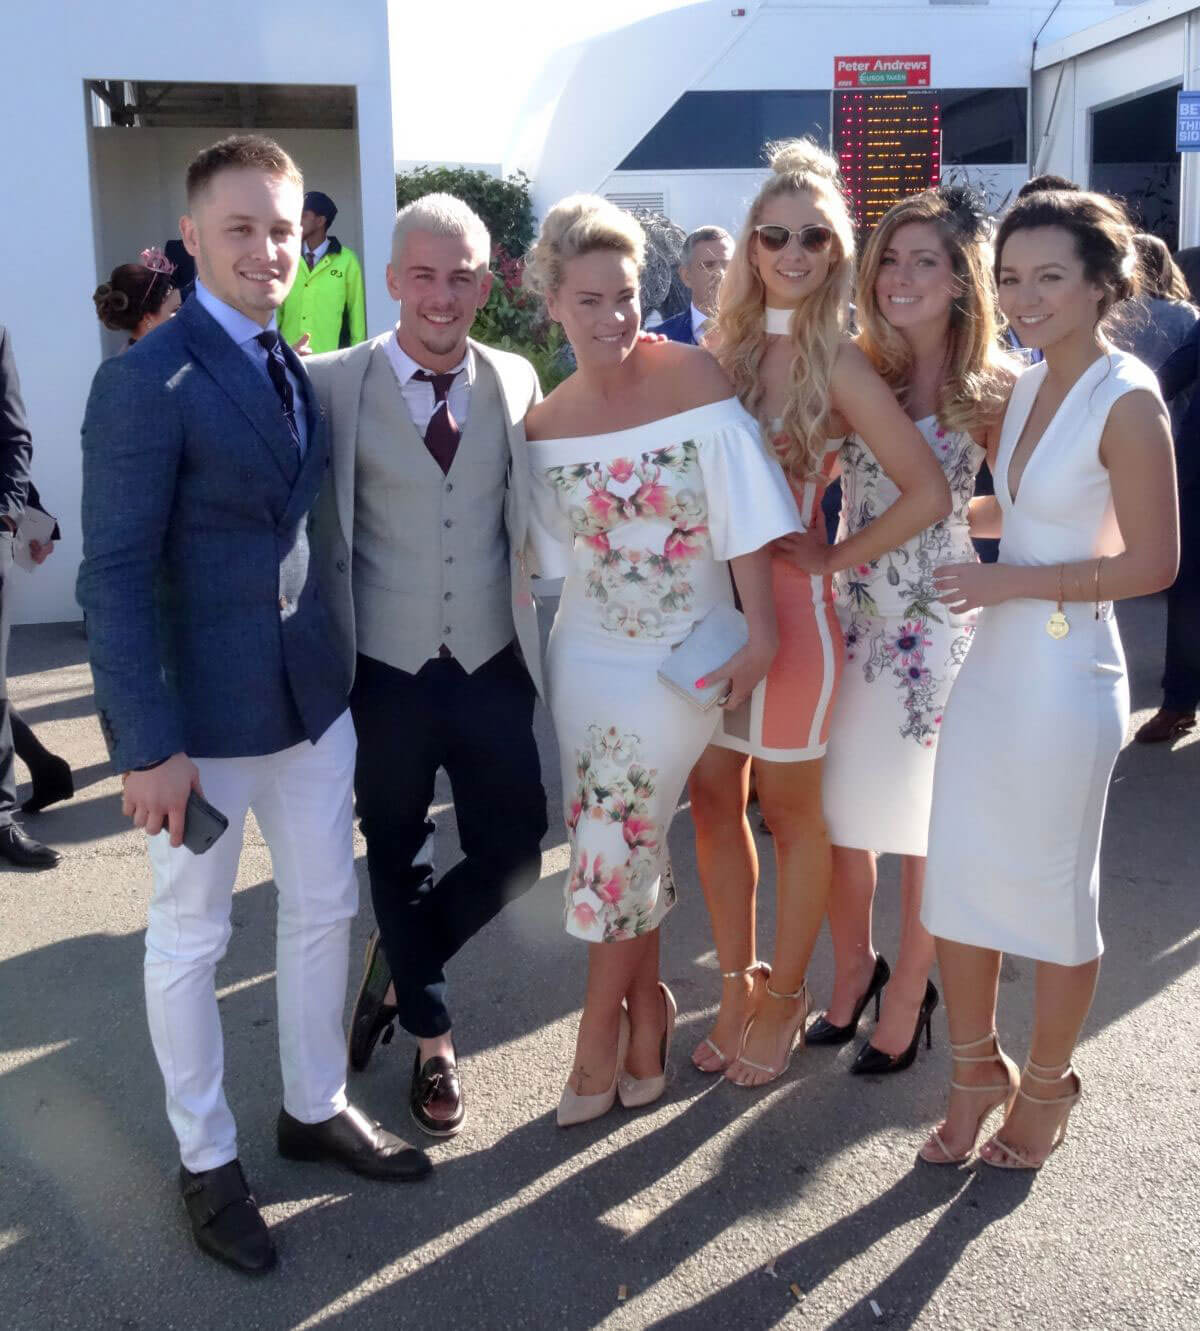 Nikki Sanderson, Nadine Rose Mulkerrin, Tamara Wall and Amanda Clapham at Grand National Ladies Day at Aintree in Merseyside